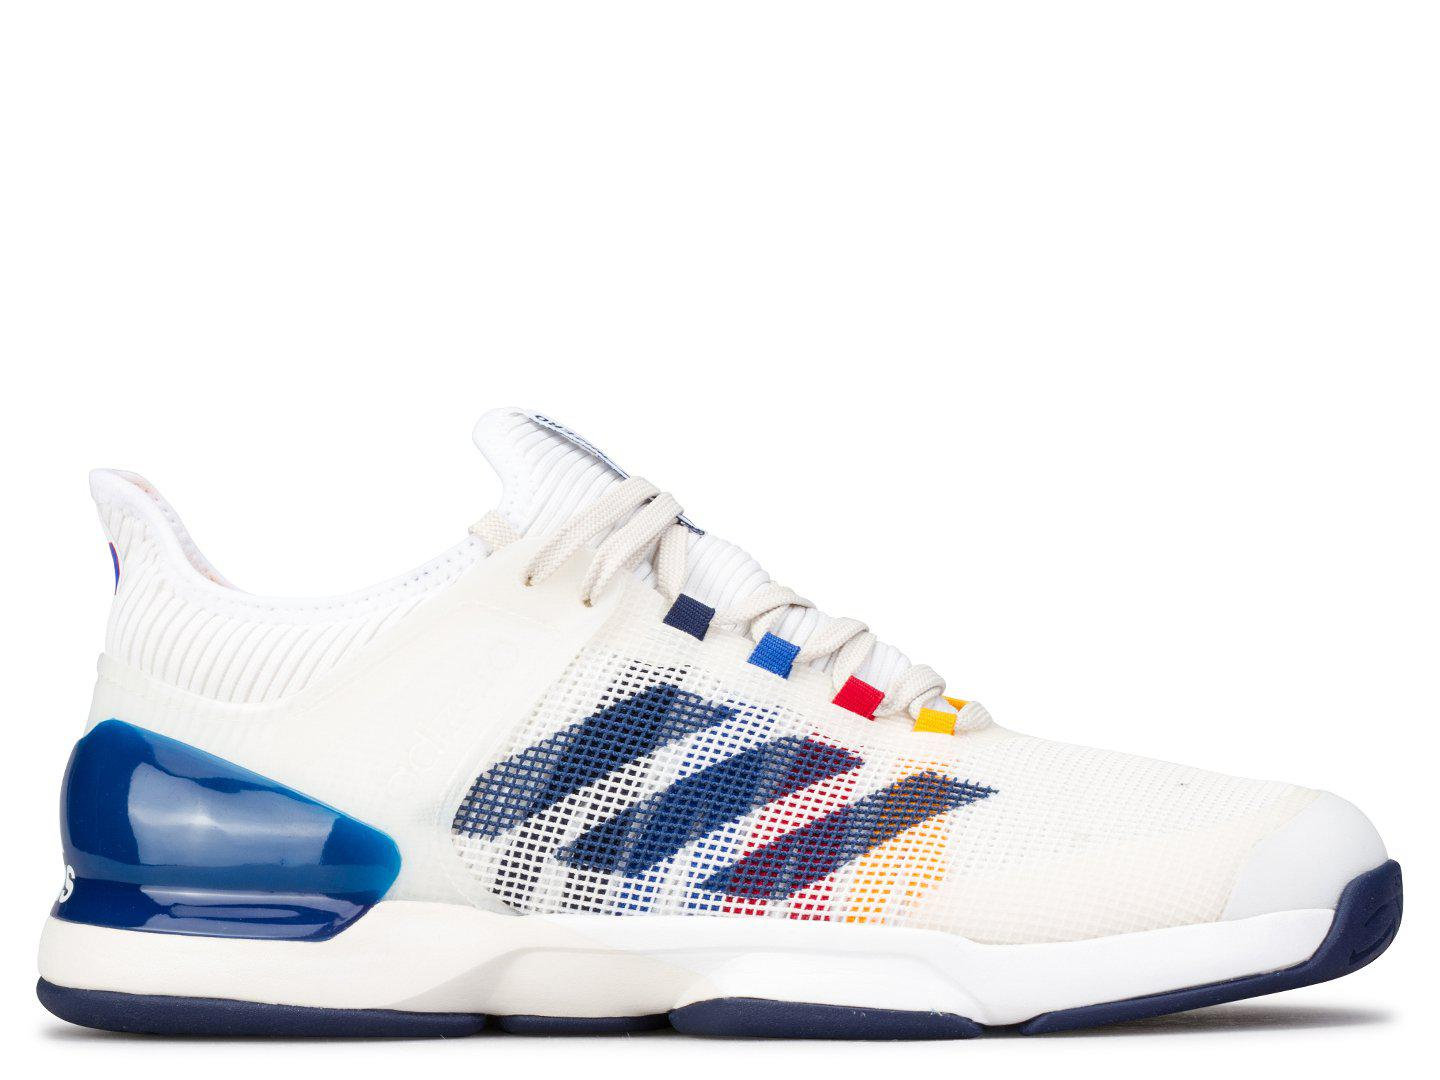 sale retailer f38a9 b76e7 Lyst - adidas Originals Adizero Ubersonic 2 Pw in Blue for M